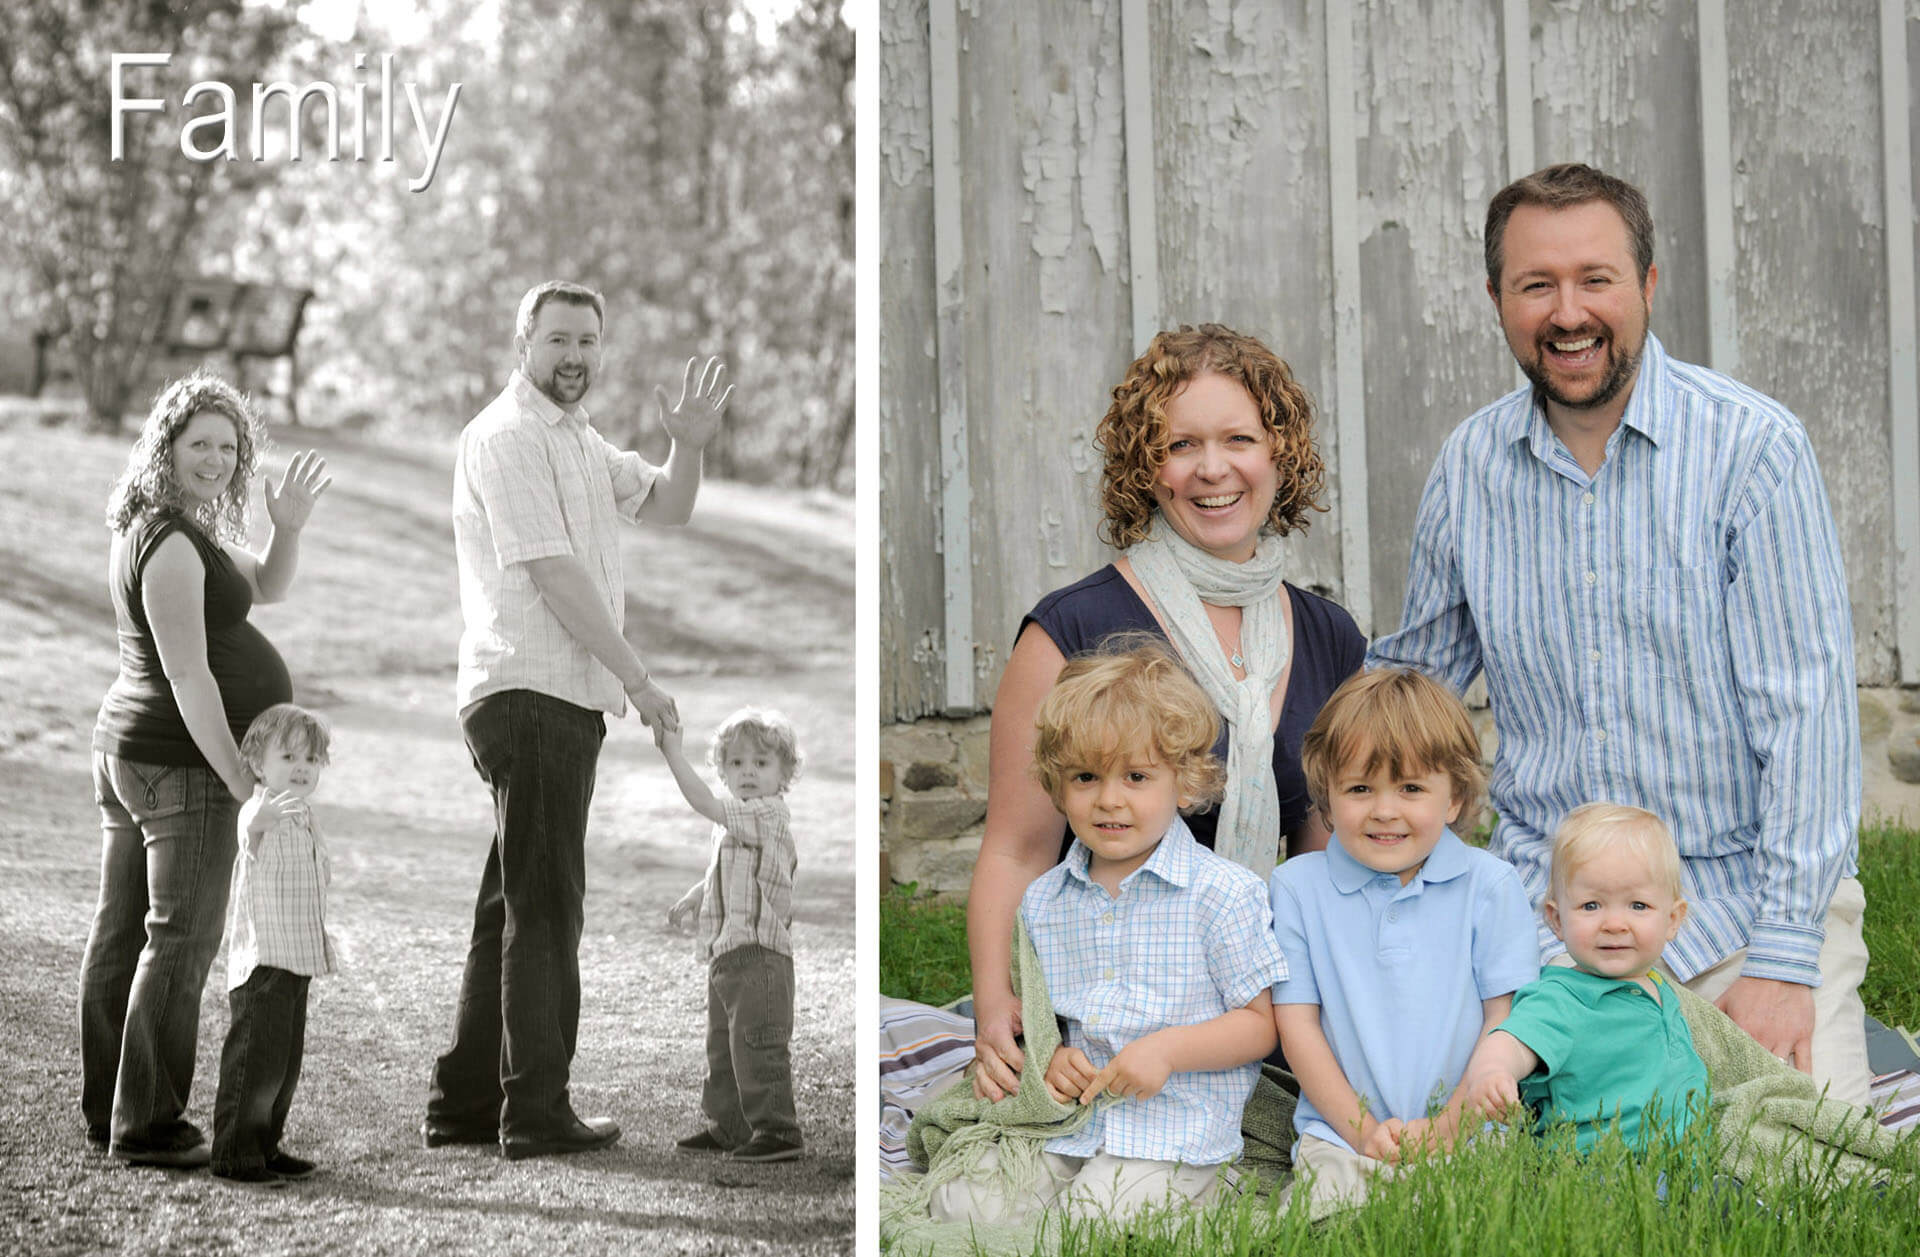 Birmingham, Michigan family photography is fun and joyful to create the best, most fun opportunities.